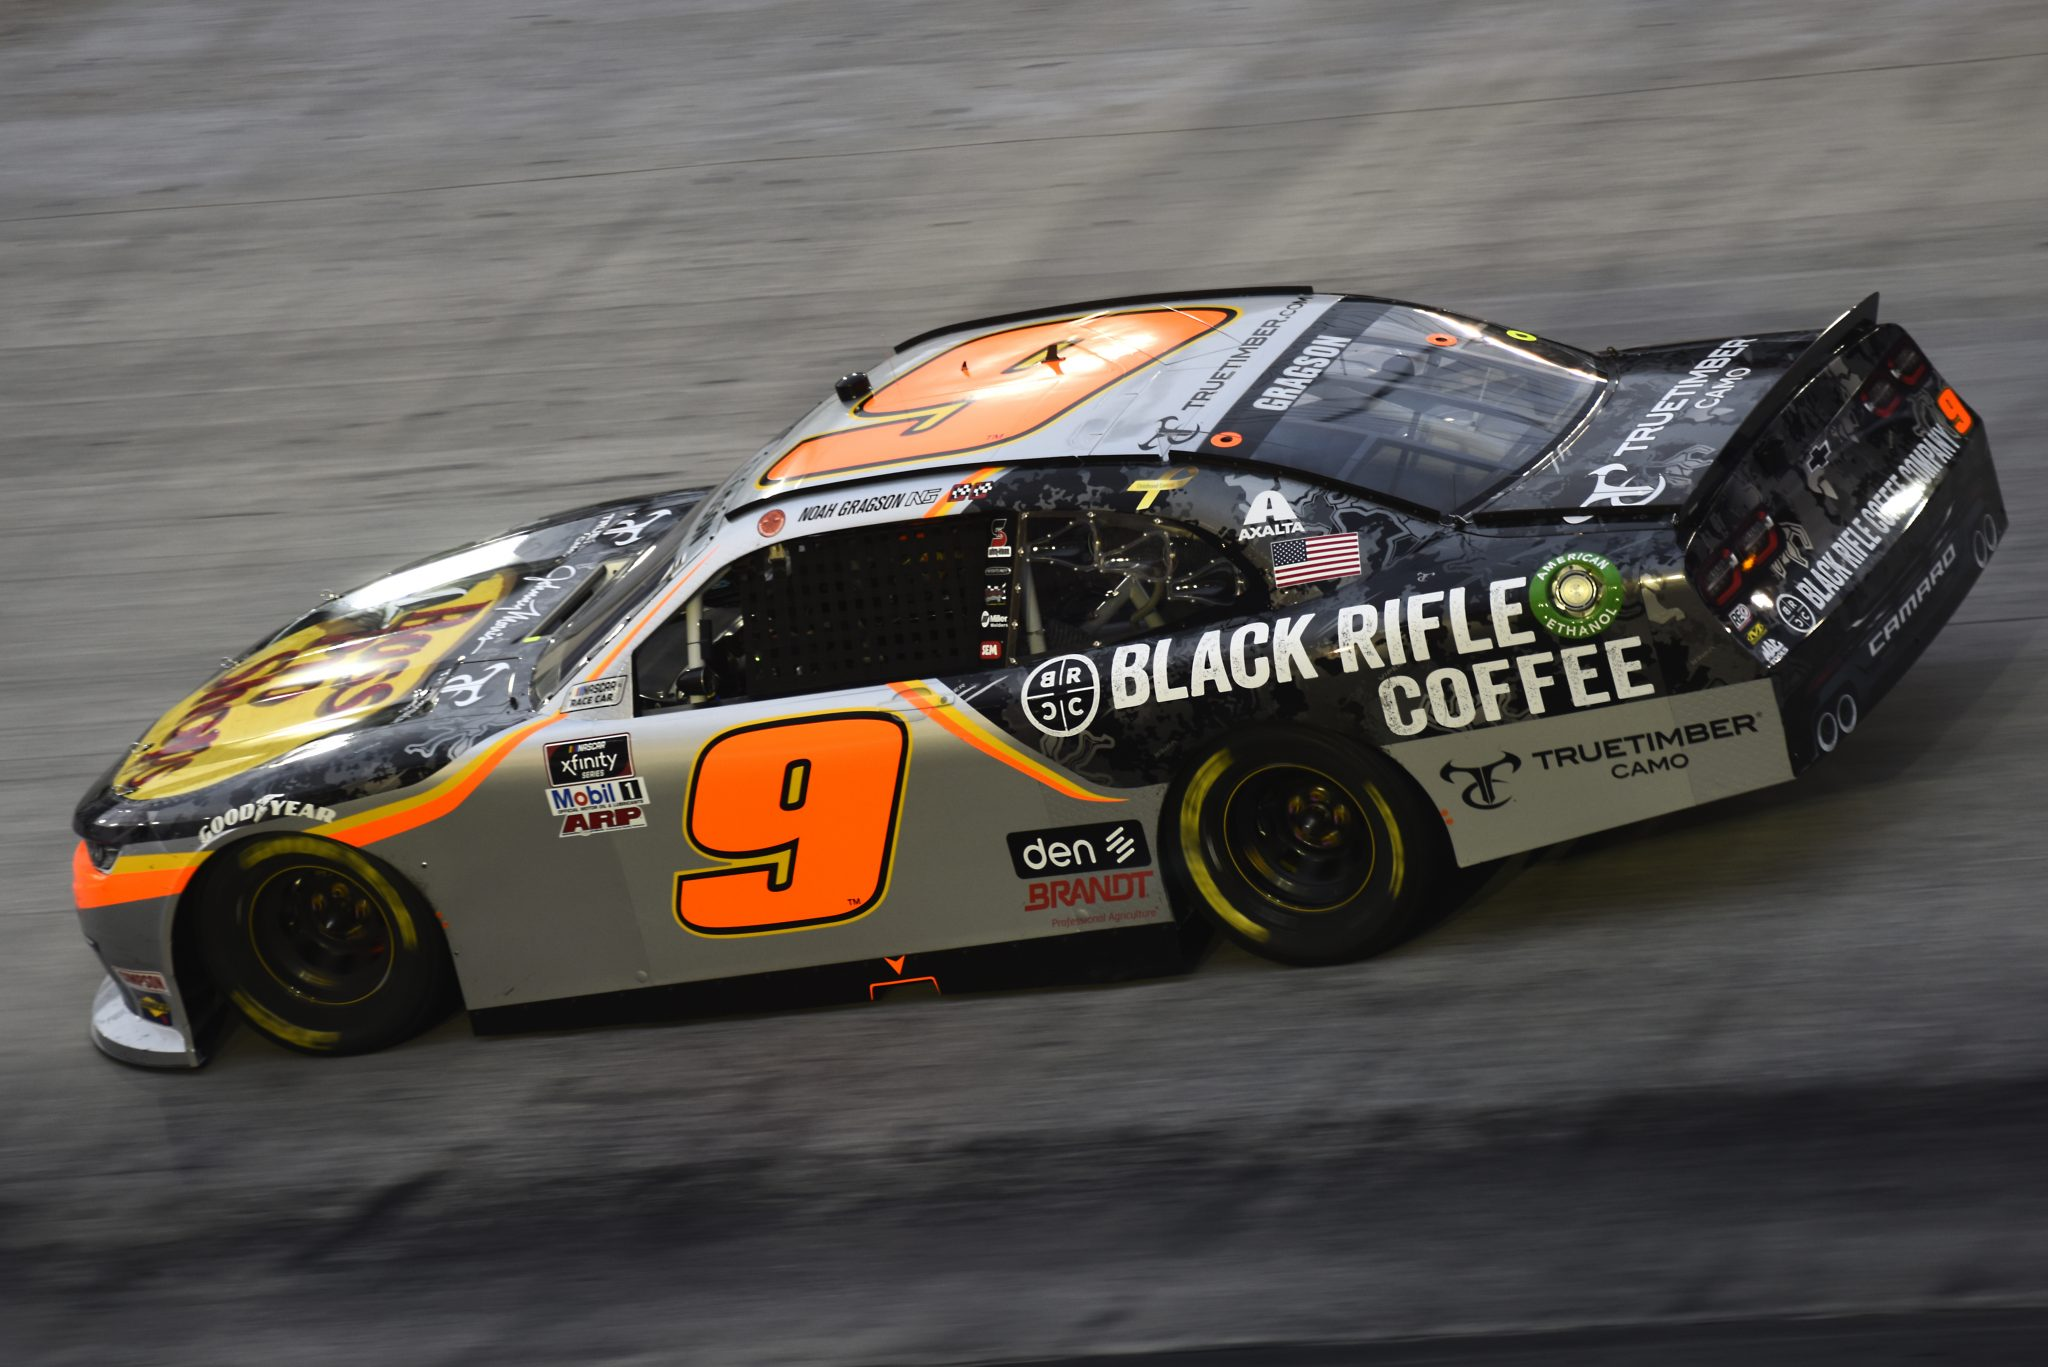 BRISTOL, TENNESSEE - SEPTEMBER 18: Noah Gragson, driver of the #9 Bass Pro Shops/Black Rifle Coffee Chevrolet, drives during the NASCAR Xfinity Series Food City 300 at Bristol Motor Speedway on September 18, 2020 in Bristol, Tennessee. (Photo by Jared C. Tilton/Getty Images) | Getty Images